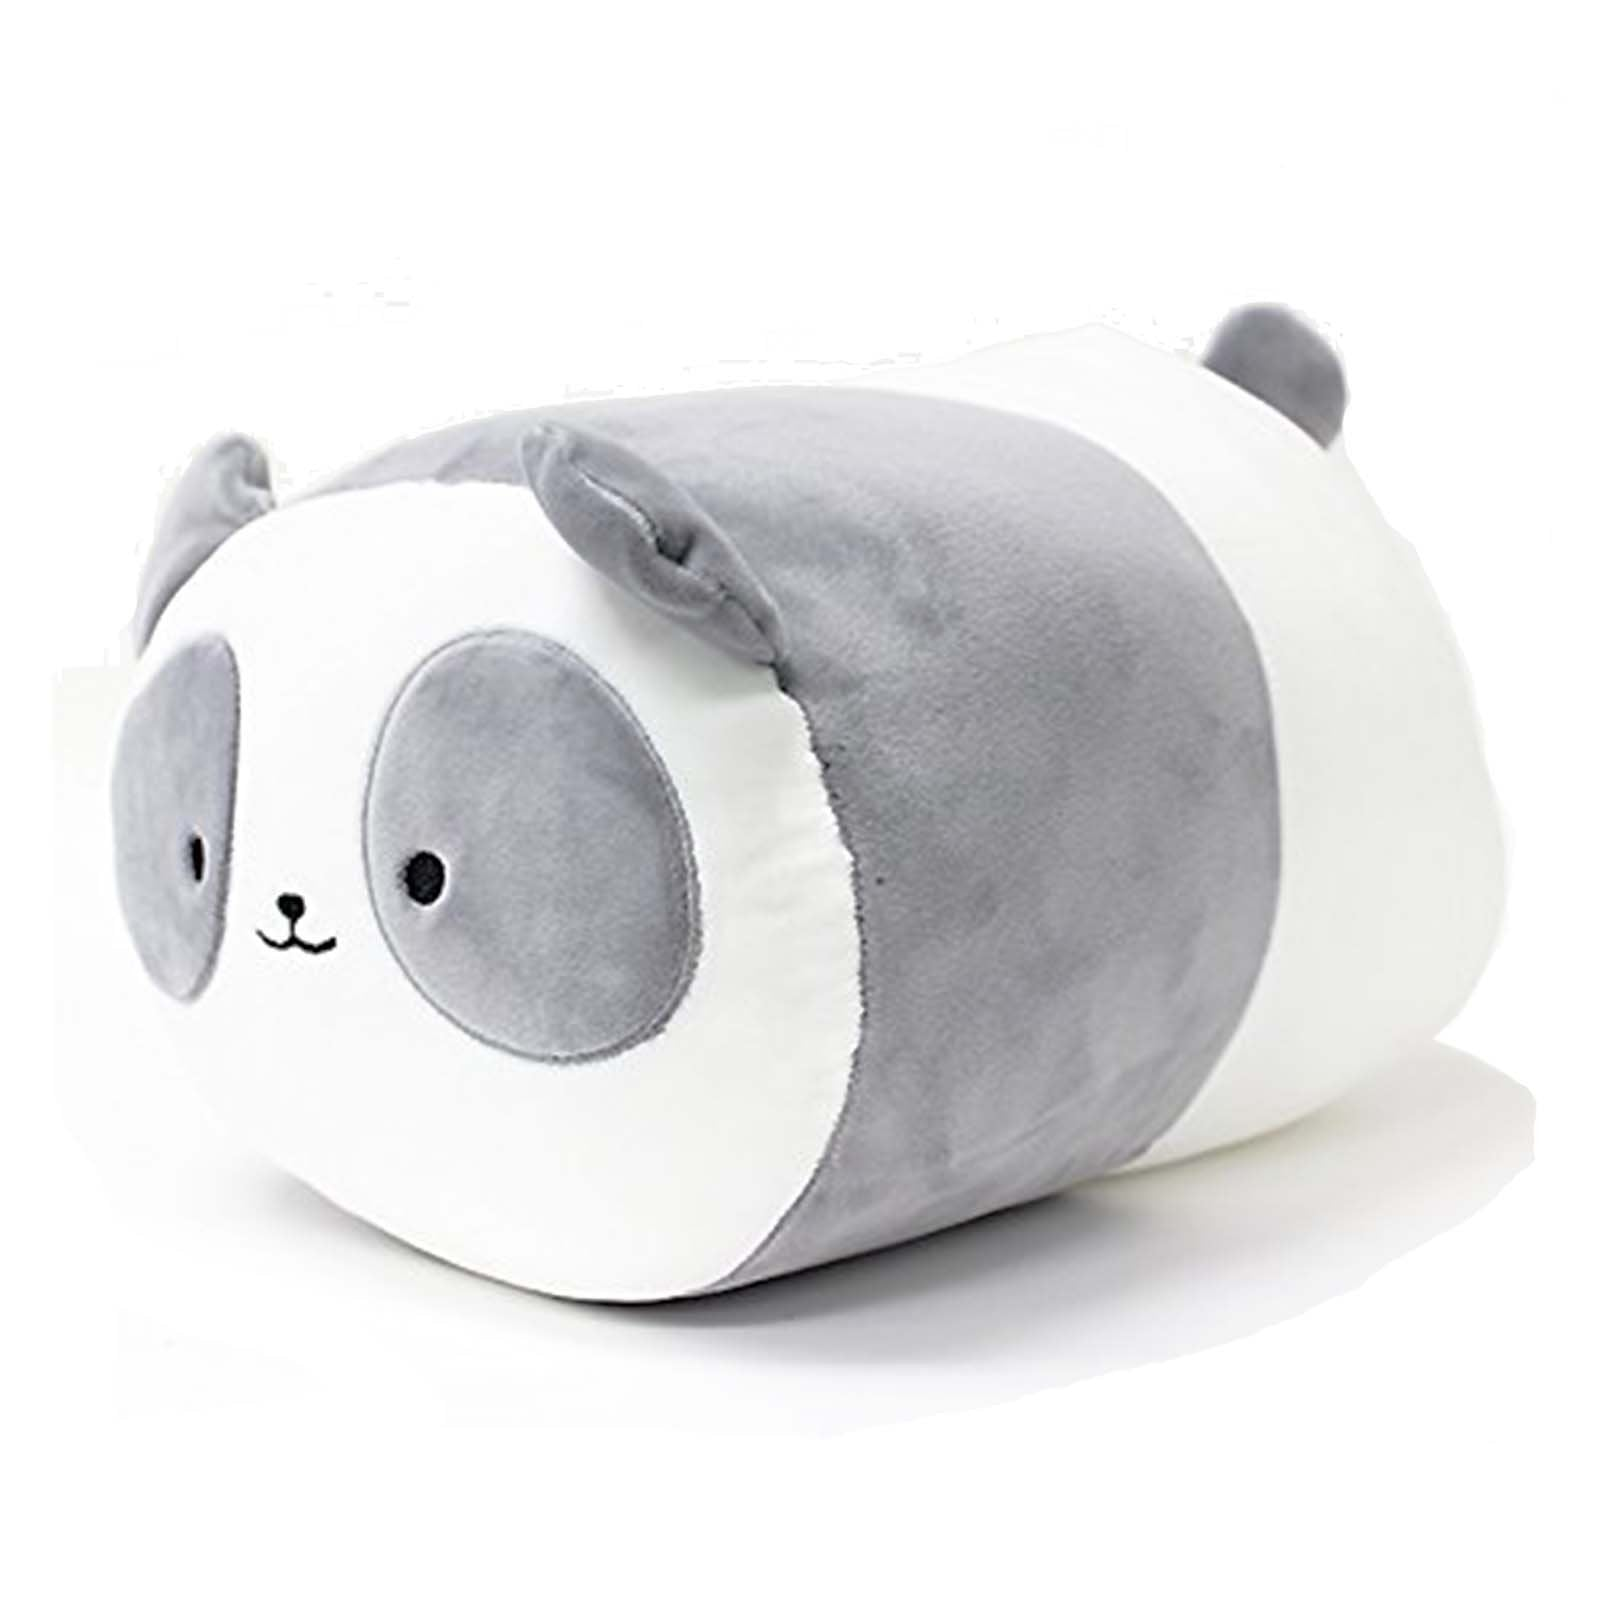 Awe Inspiring Beecrazee Anirollz Large Panda 13 Inch Super Soft Plush Ocoug Best Dining Table And Chair Ideas Images Ocougorg